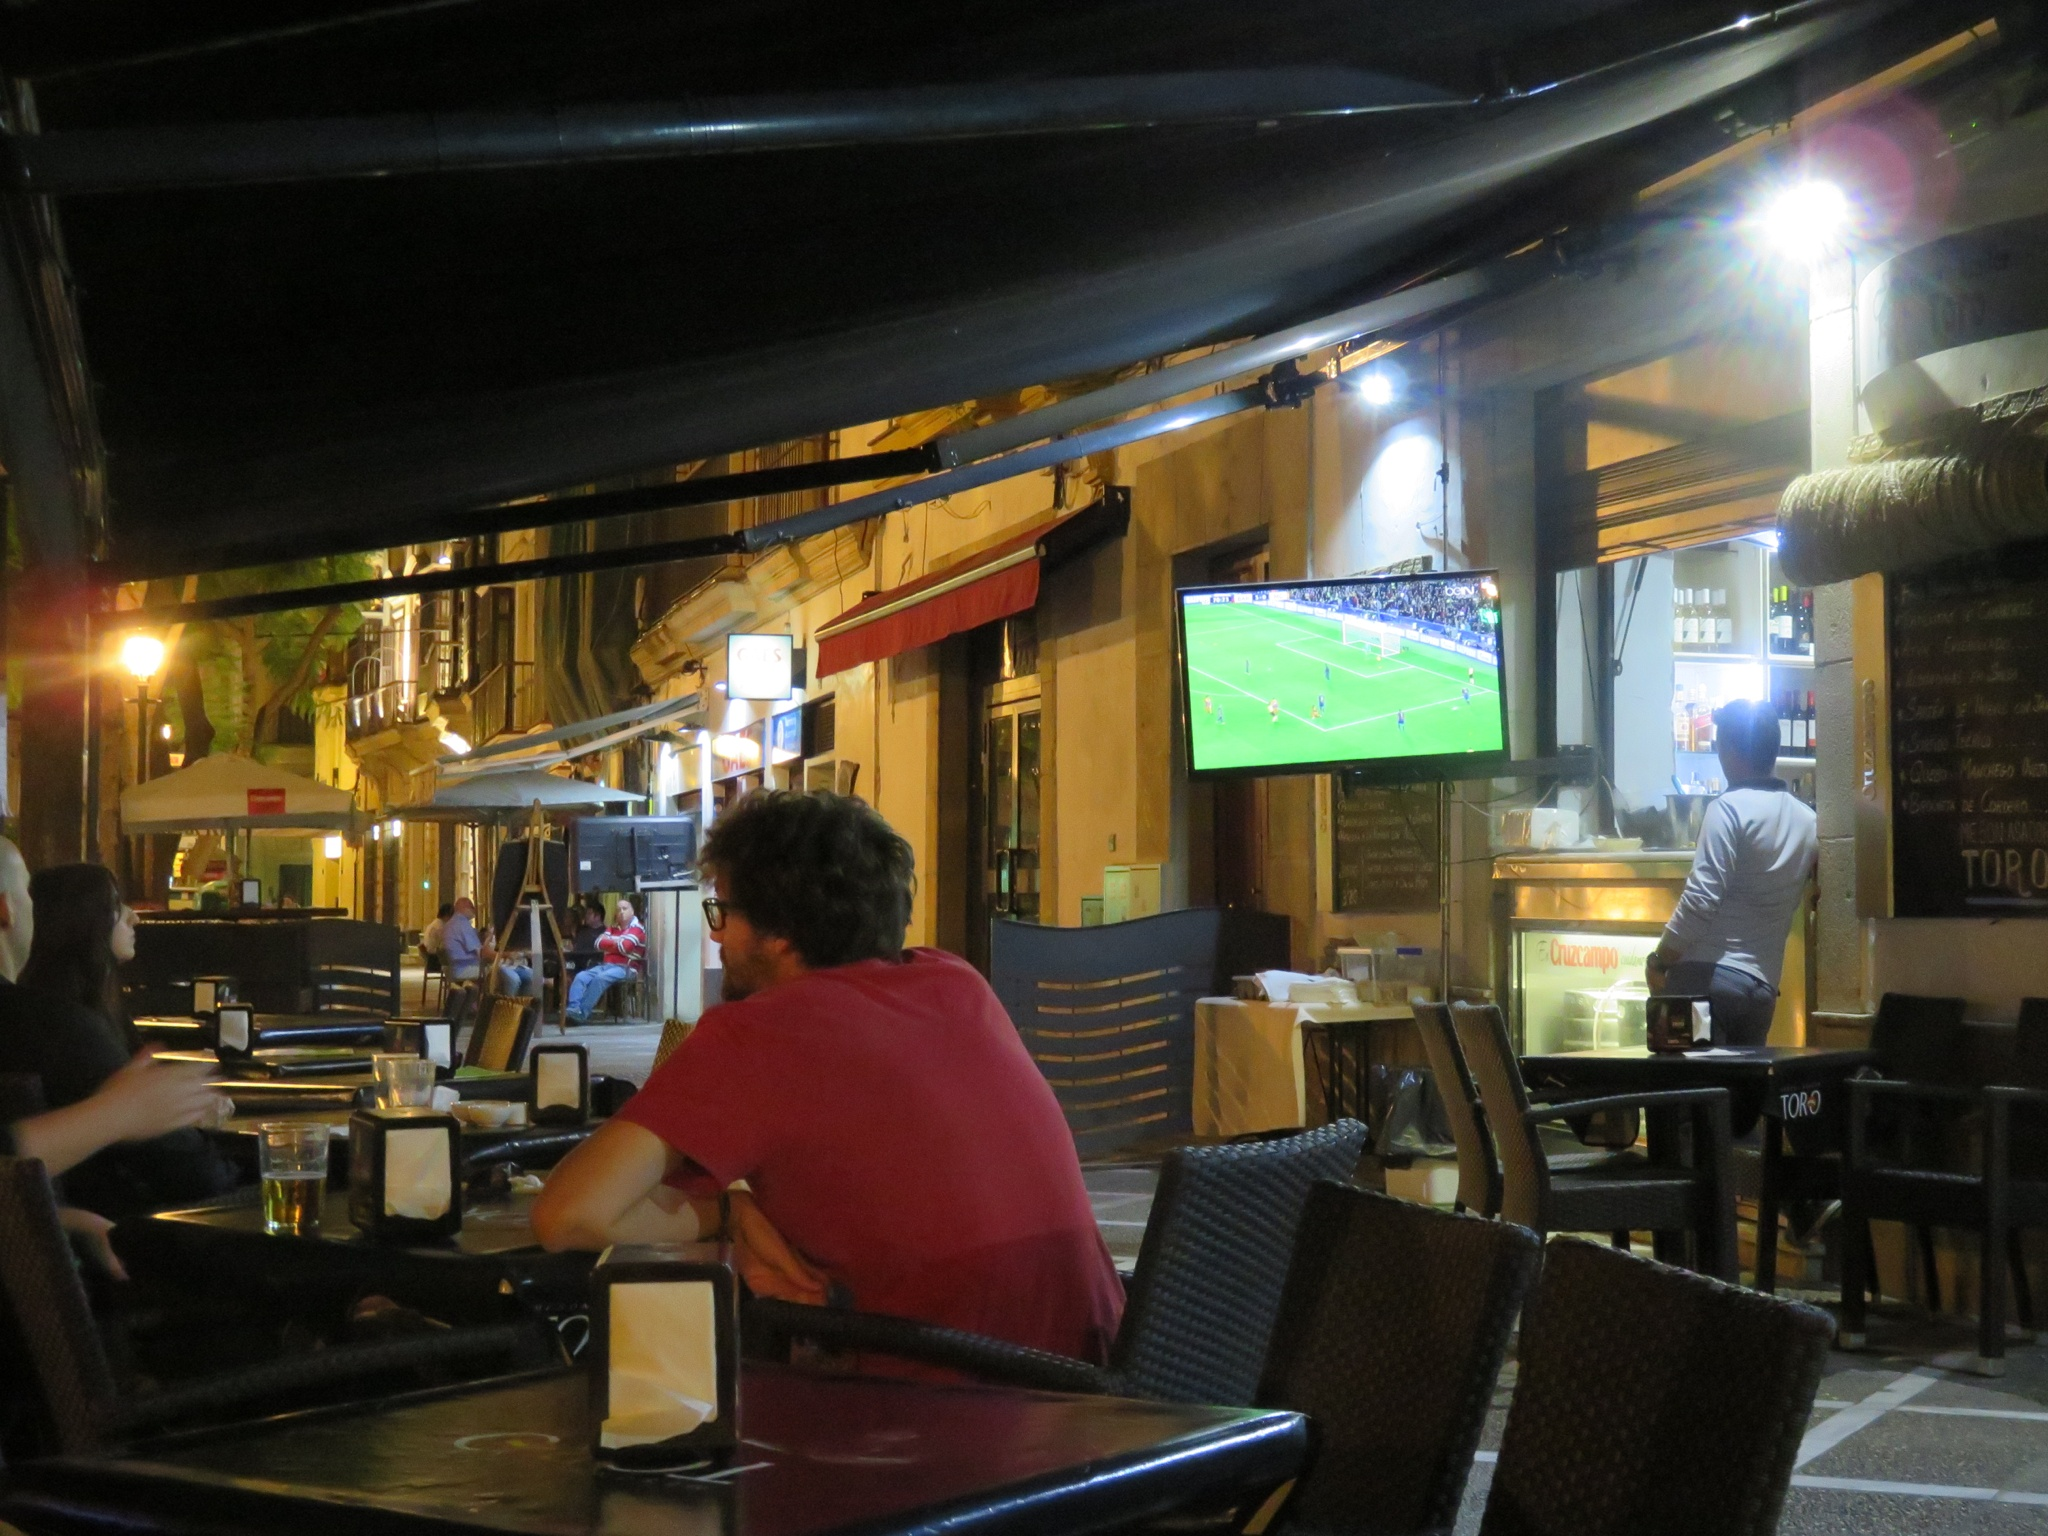 Great end of the day, sipping cerveza and watching the futbol game (Barcelona Vs Manchester) at a tavern terrace